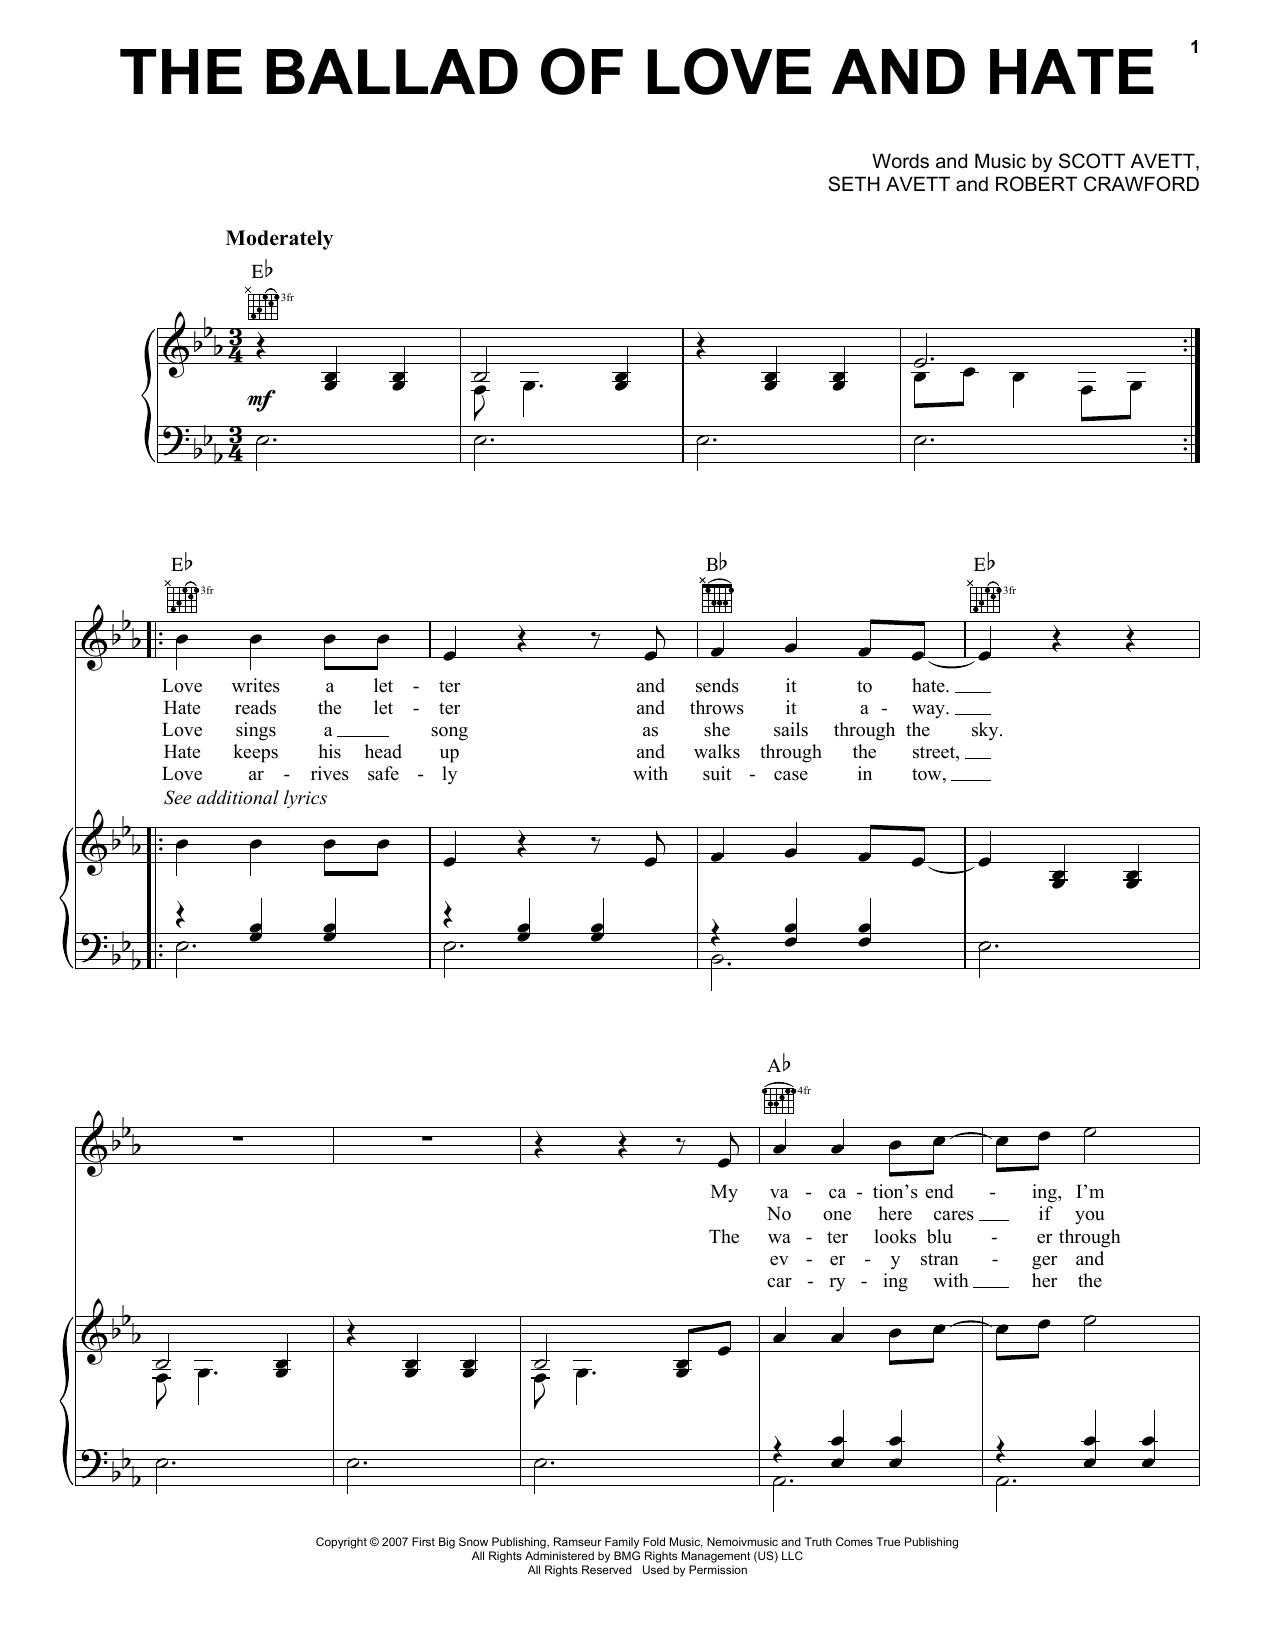 The Ballad Of Love And Hate : Sheet Music Direct